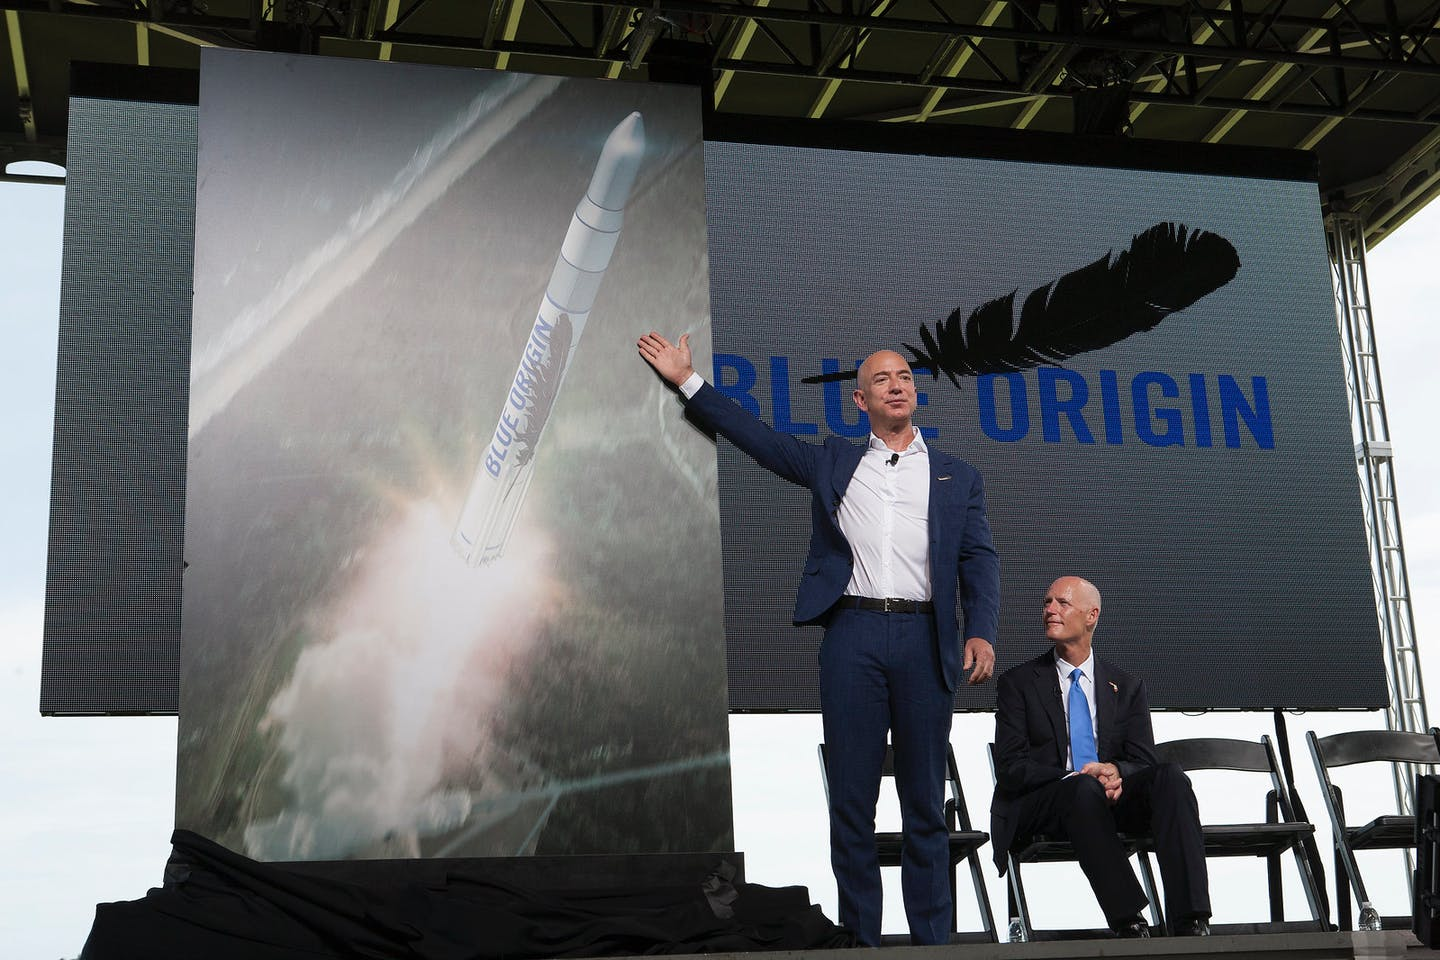 Jeff Bezos, founder and CEO of Blue Origin